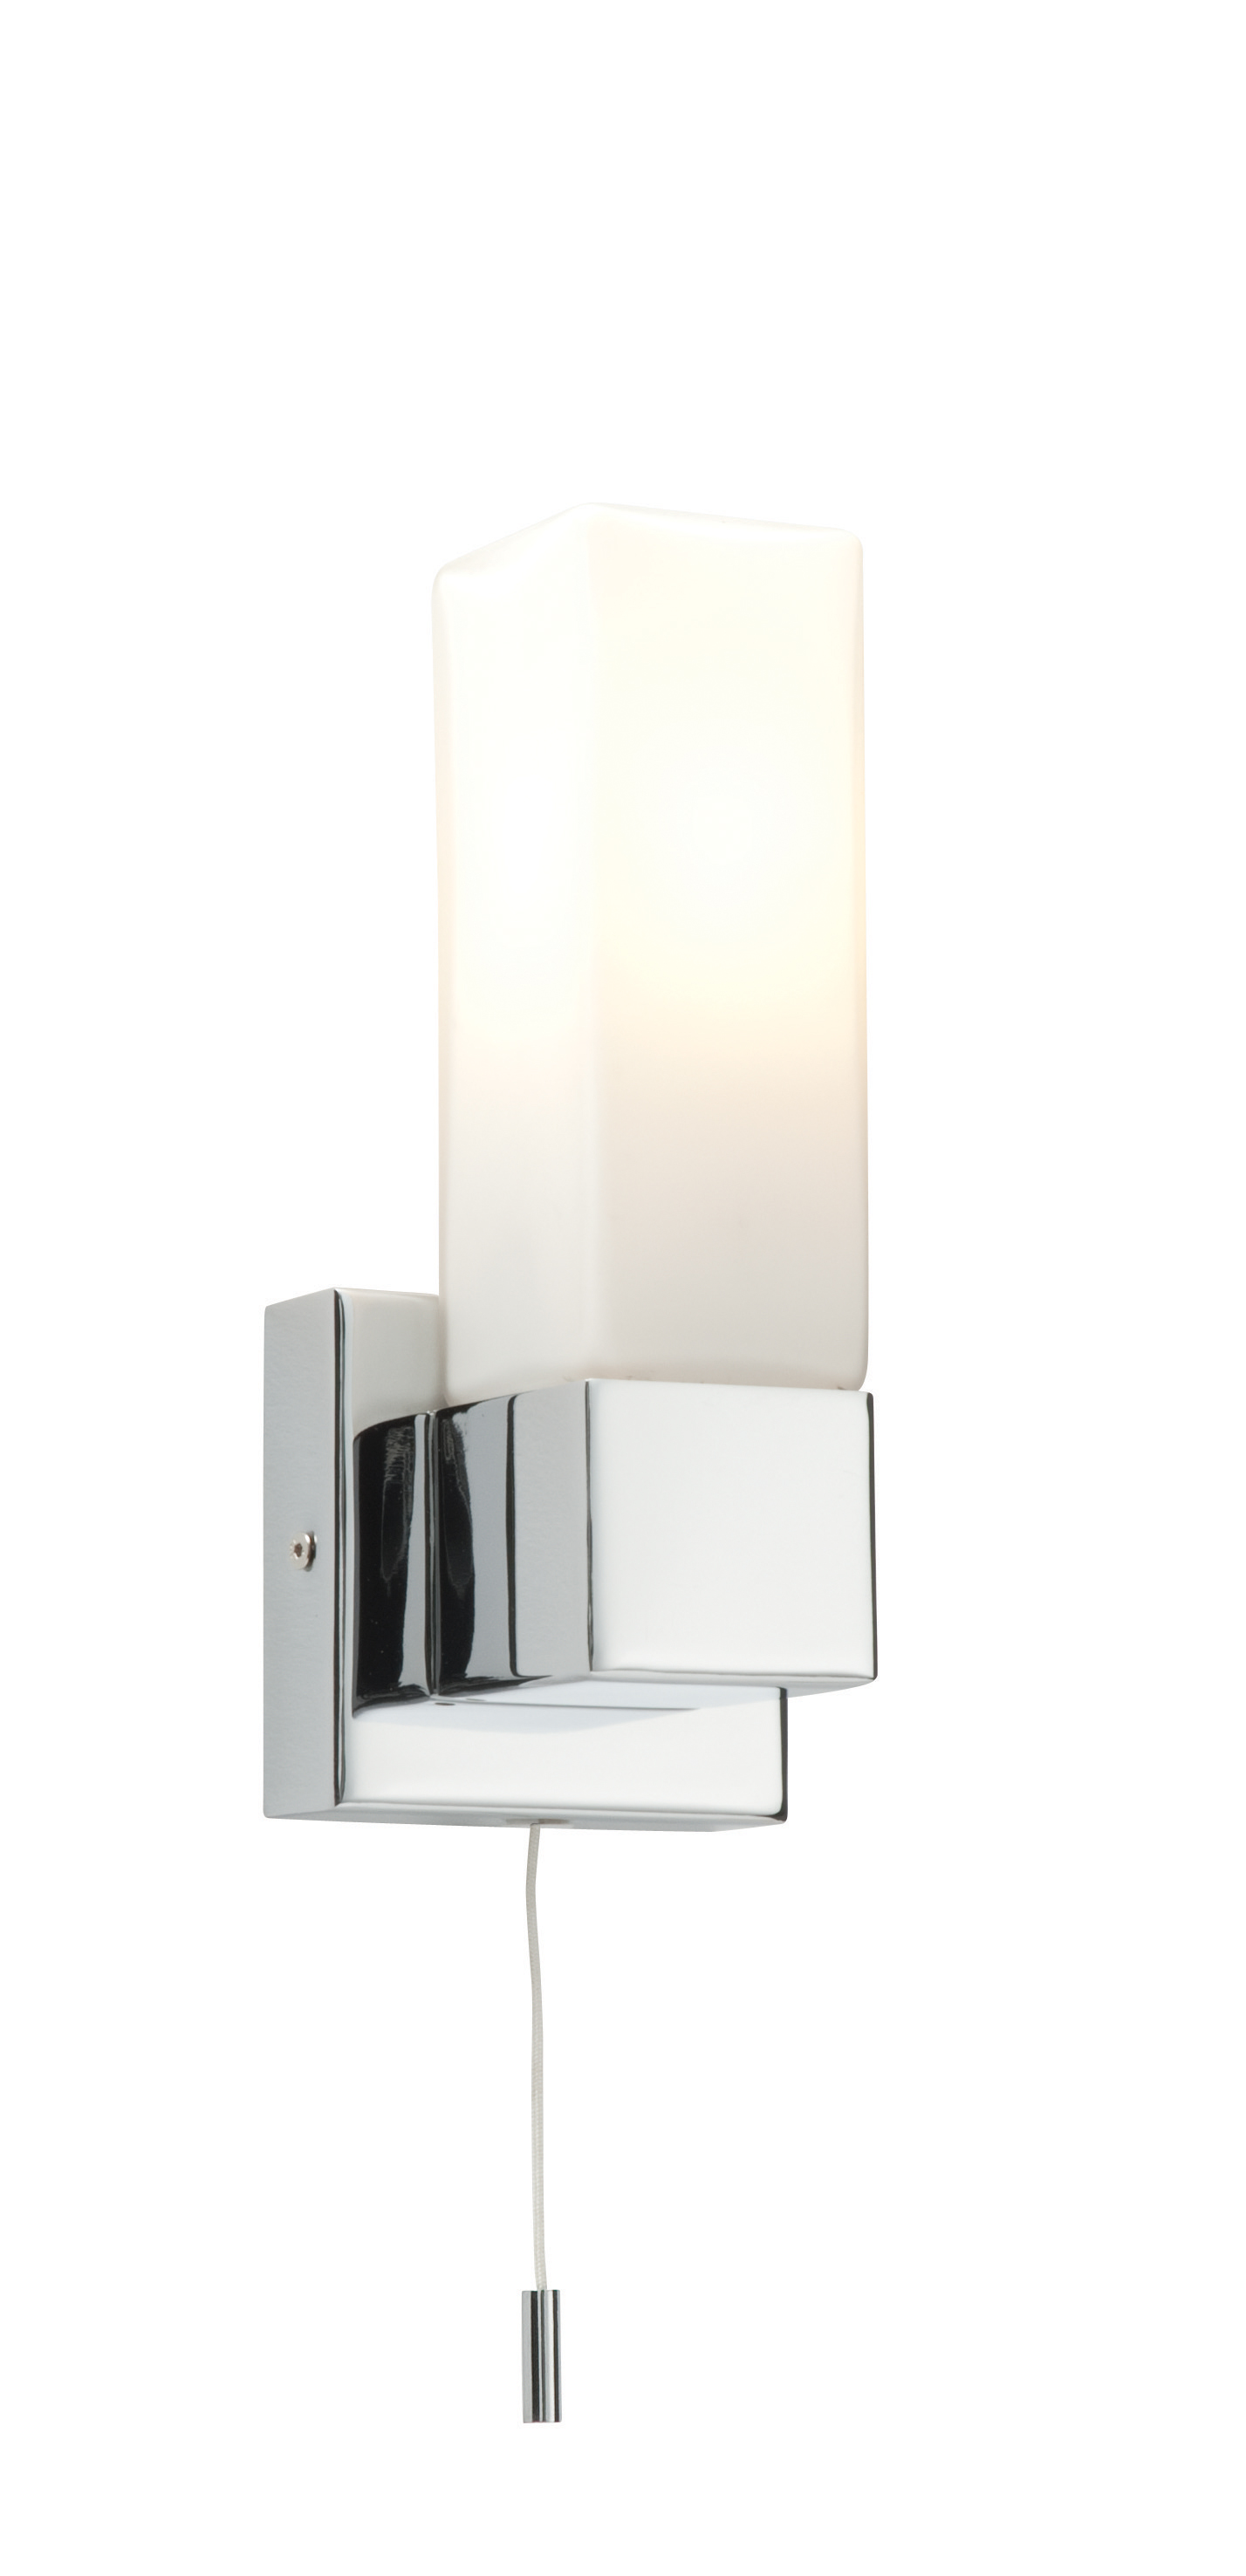 Bathroom Wall Lights Pull Cord Switch : Saxby Square single bathroom wall light pull cord switch chrome glass 40W E14 eBay